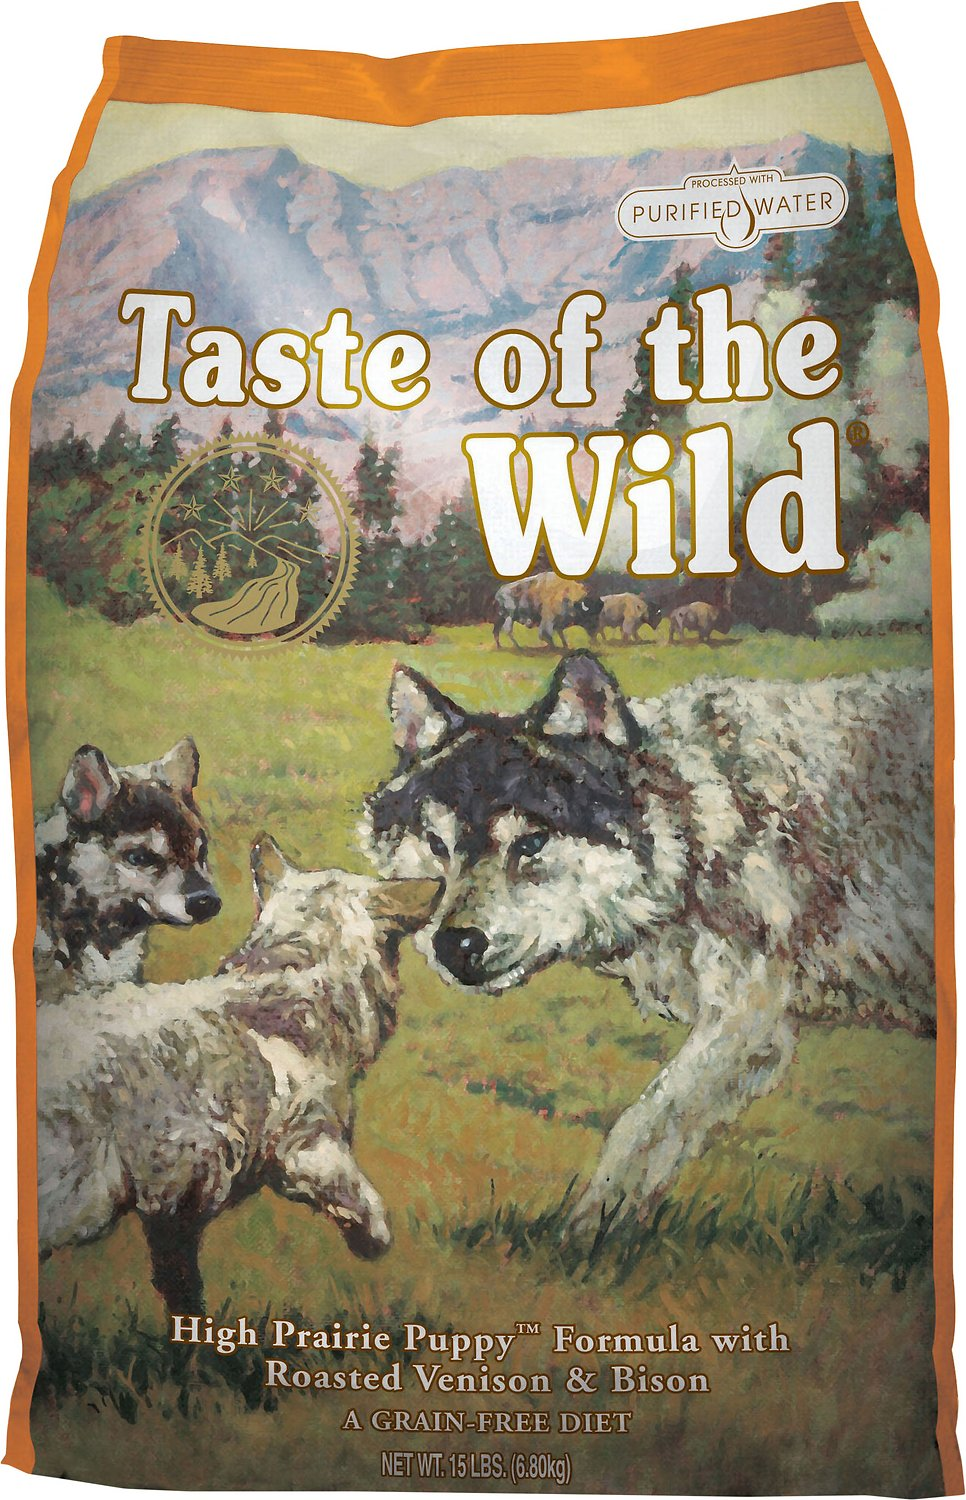 Taste Of The Wild Dog Food Reviews >> Taste of the Wild High Prairie Puppy Formula Grain-Free Dry Dog Food, 30-lb bag - Chewy.com